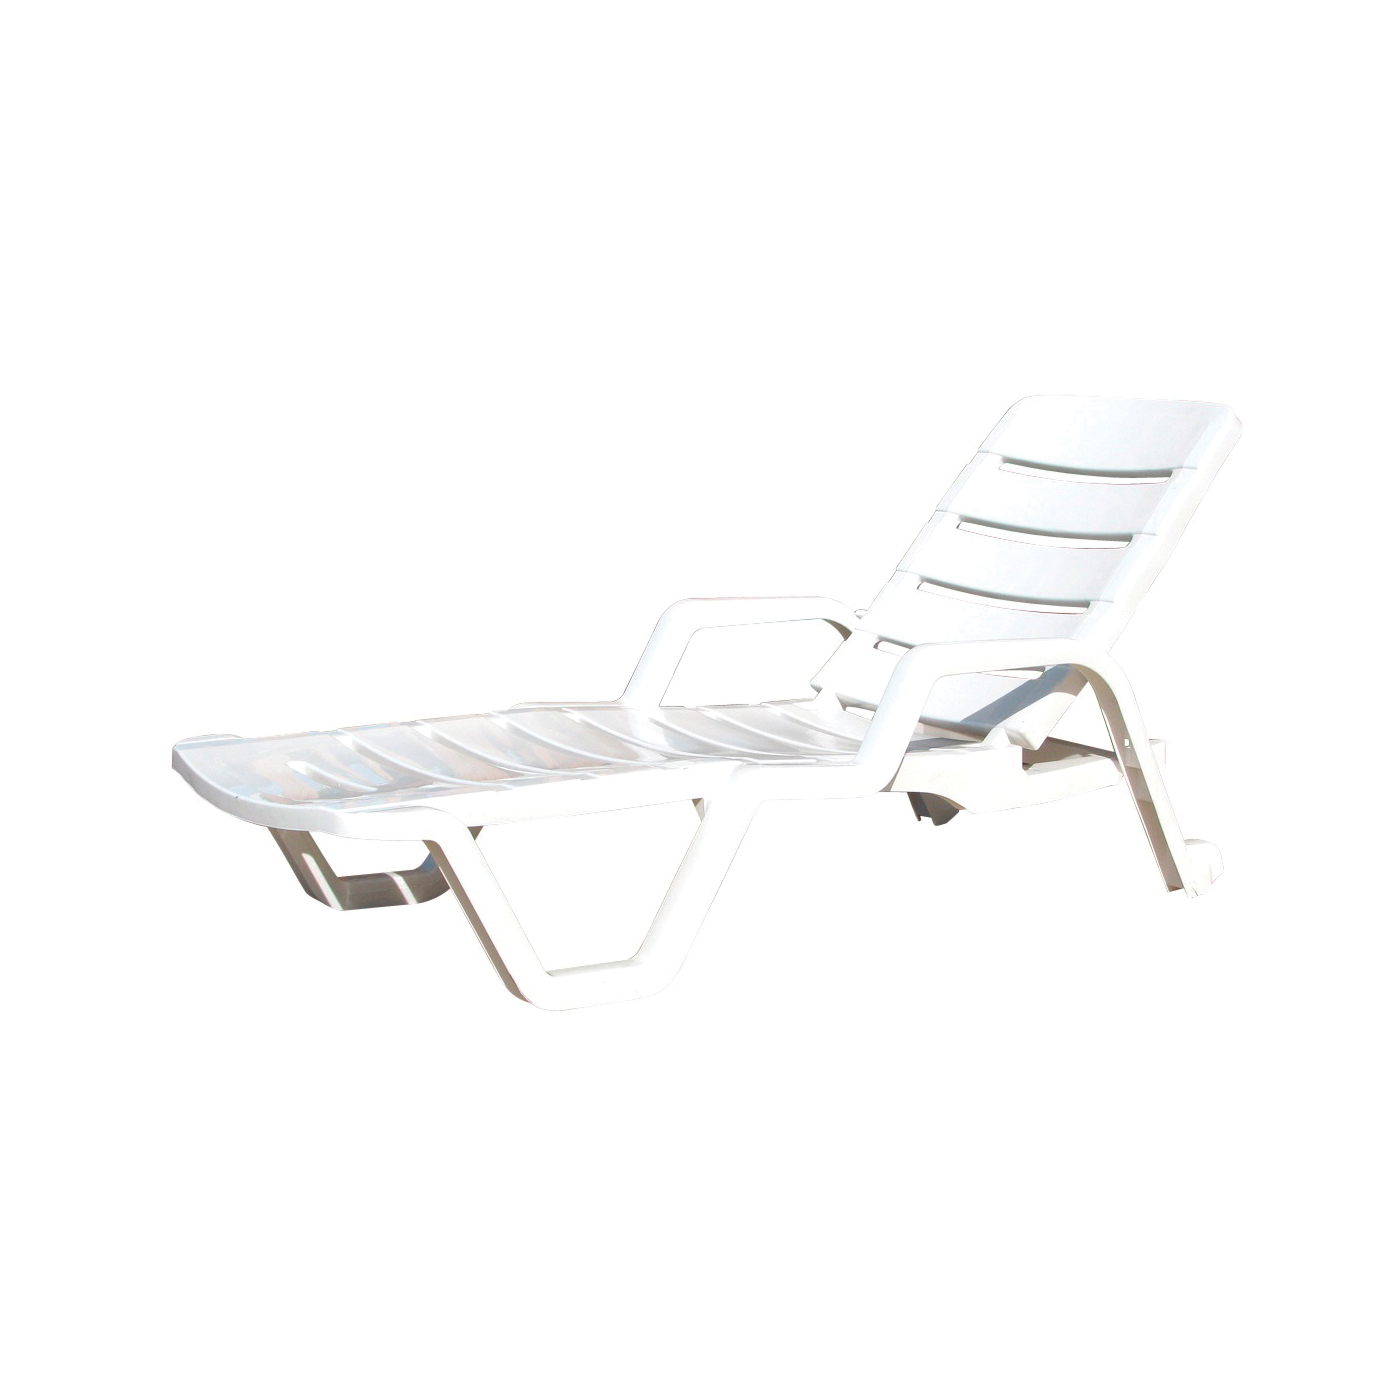 Picture of Adams 8010-48-3700 Chaise Lounge, 27 in OAW, 76-1/4 in OAD, 17-1/2 in OAH, 4 -Position, Resin Frame, Polypropylene